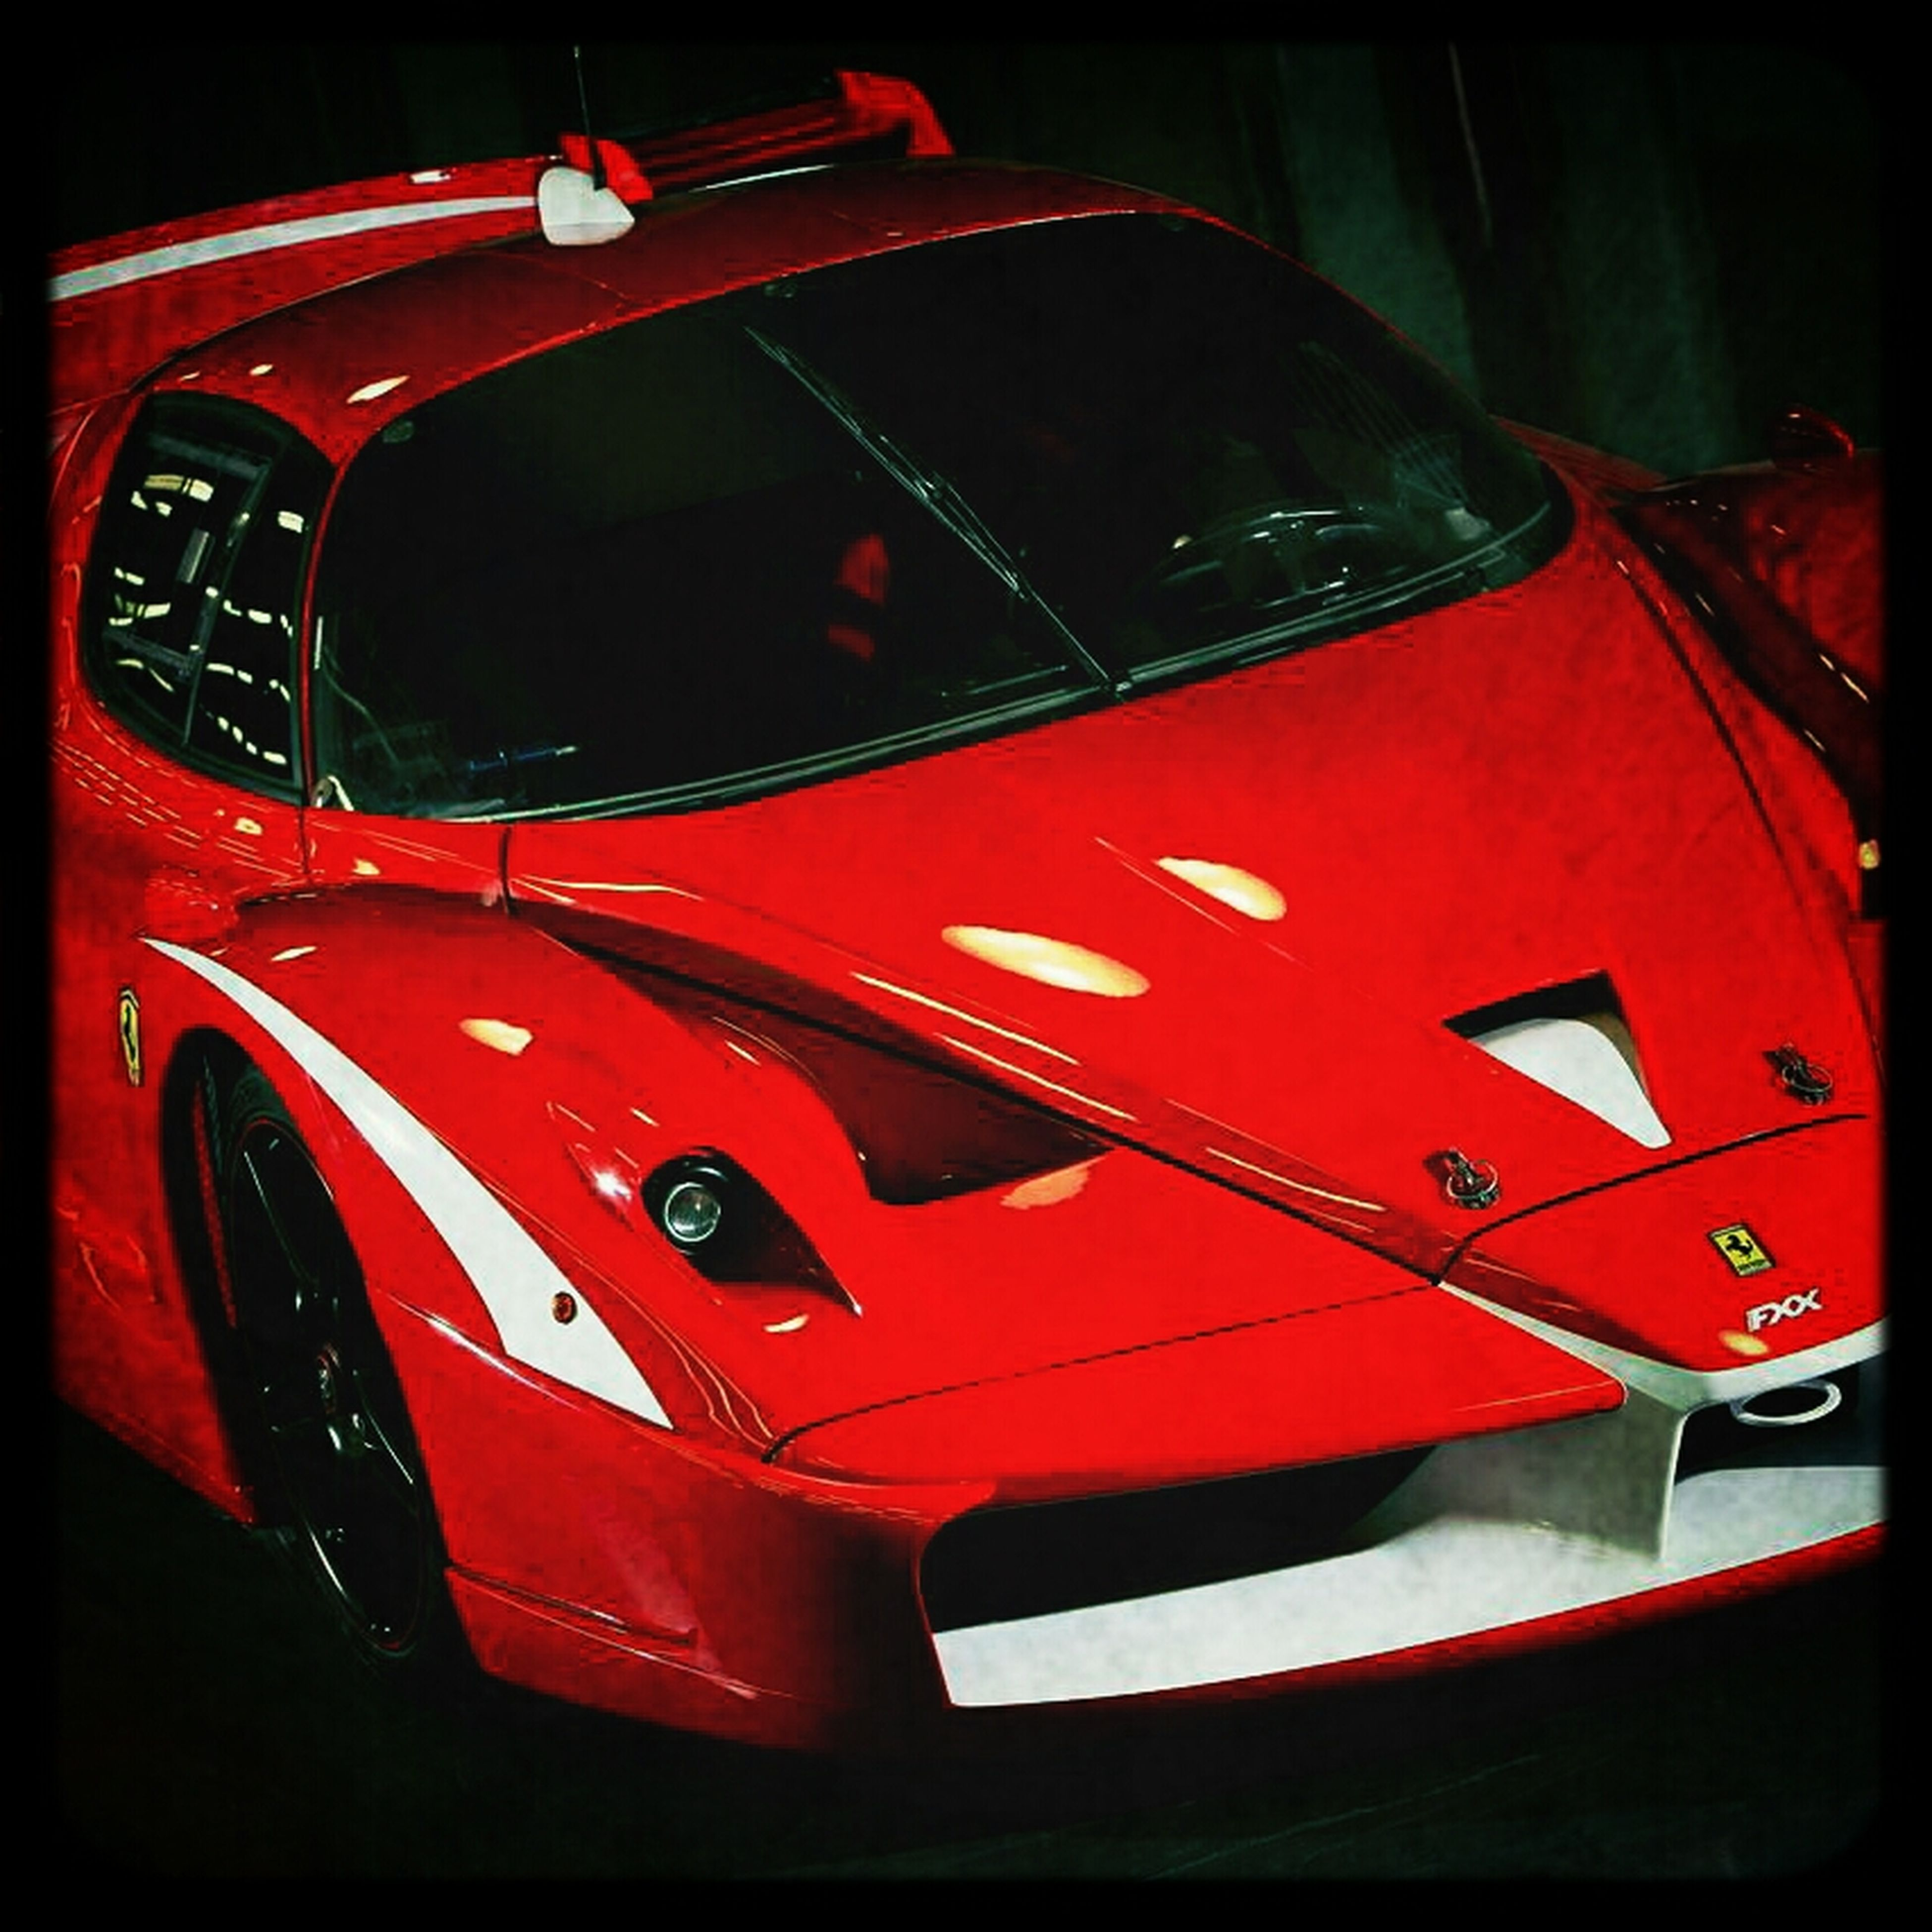 red, transportation, car, mode of transport, land vehicle, close-up, indoors, part of, no people, high angle view, vehicle interior, travel, auto post production filter, day, black color, cropped, detail, still life